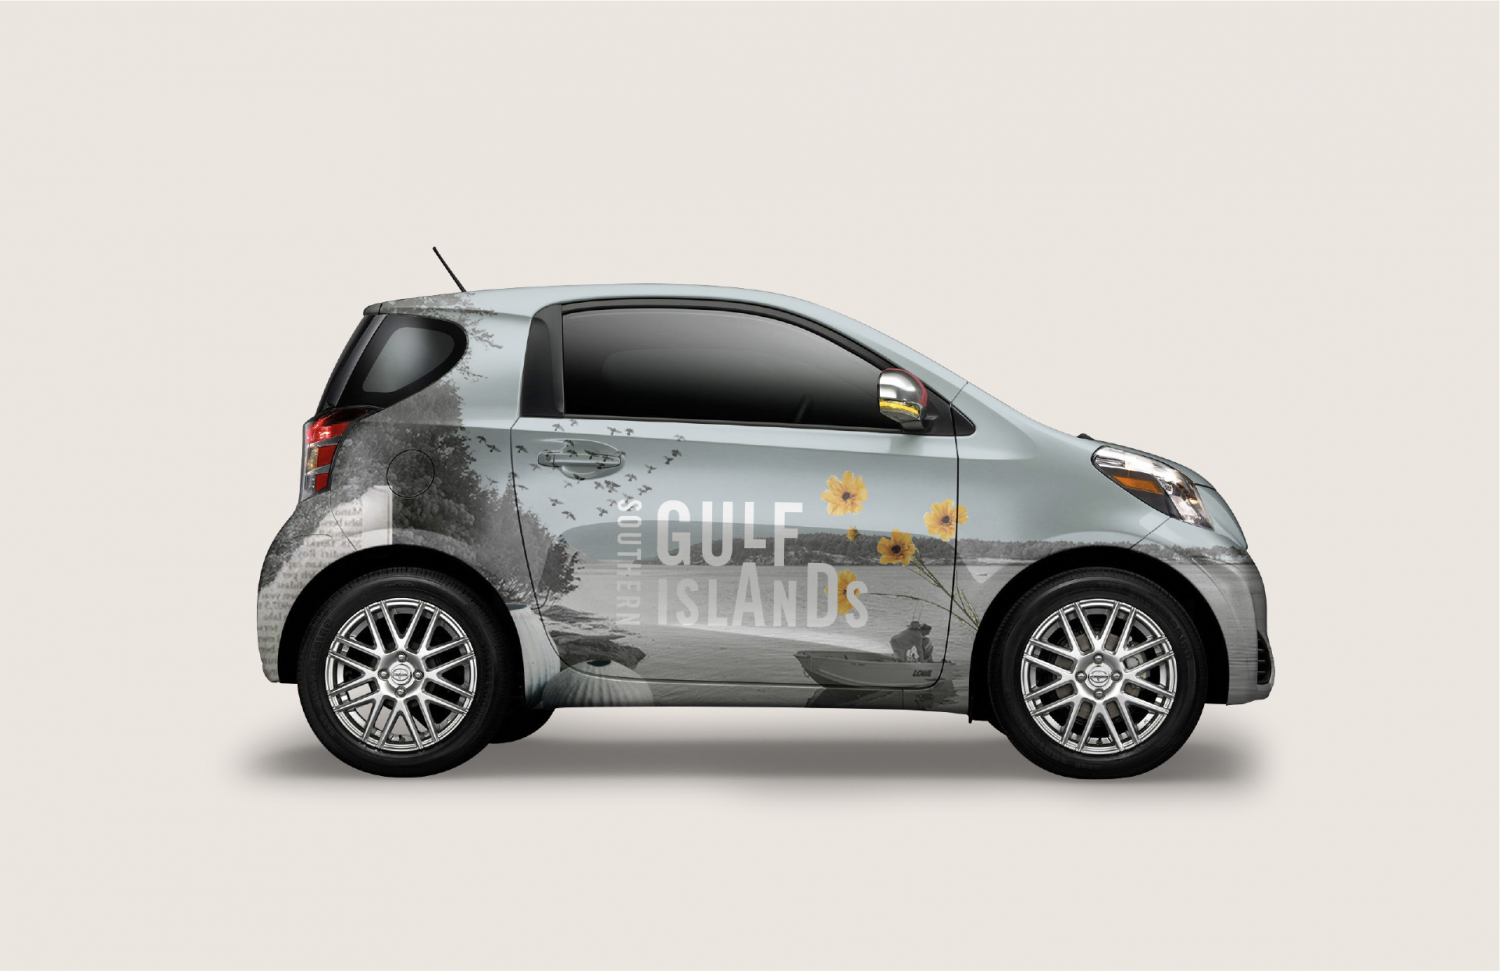 Car wrap mockup with Southern Gulf Islands Collage